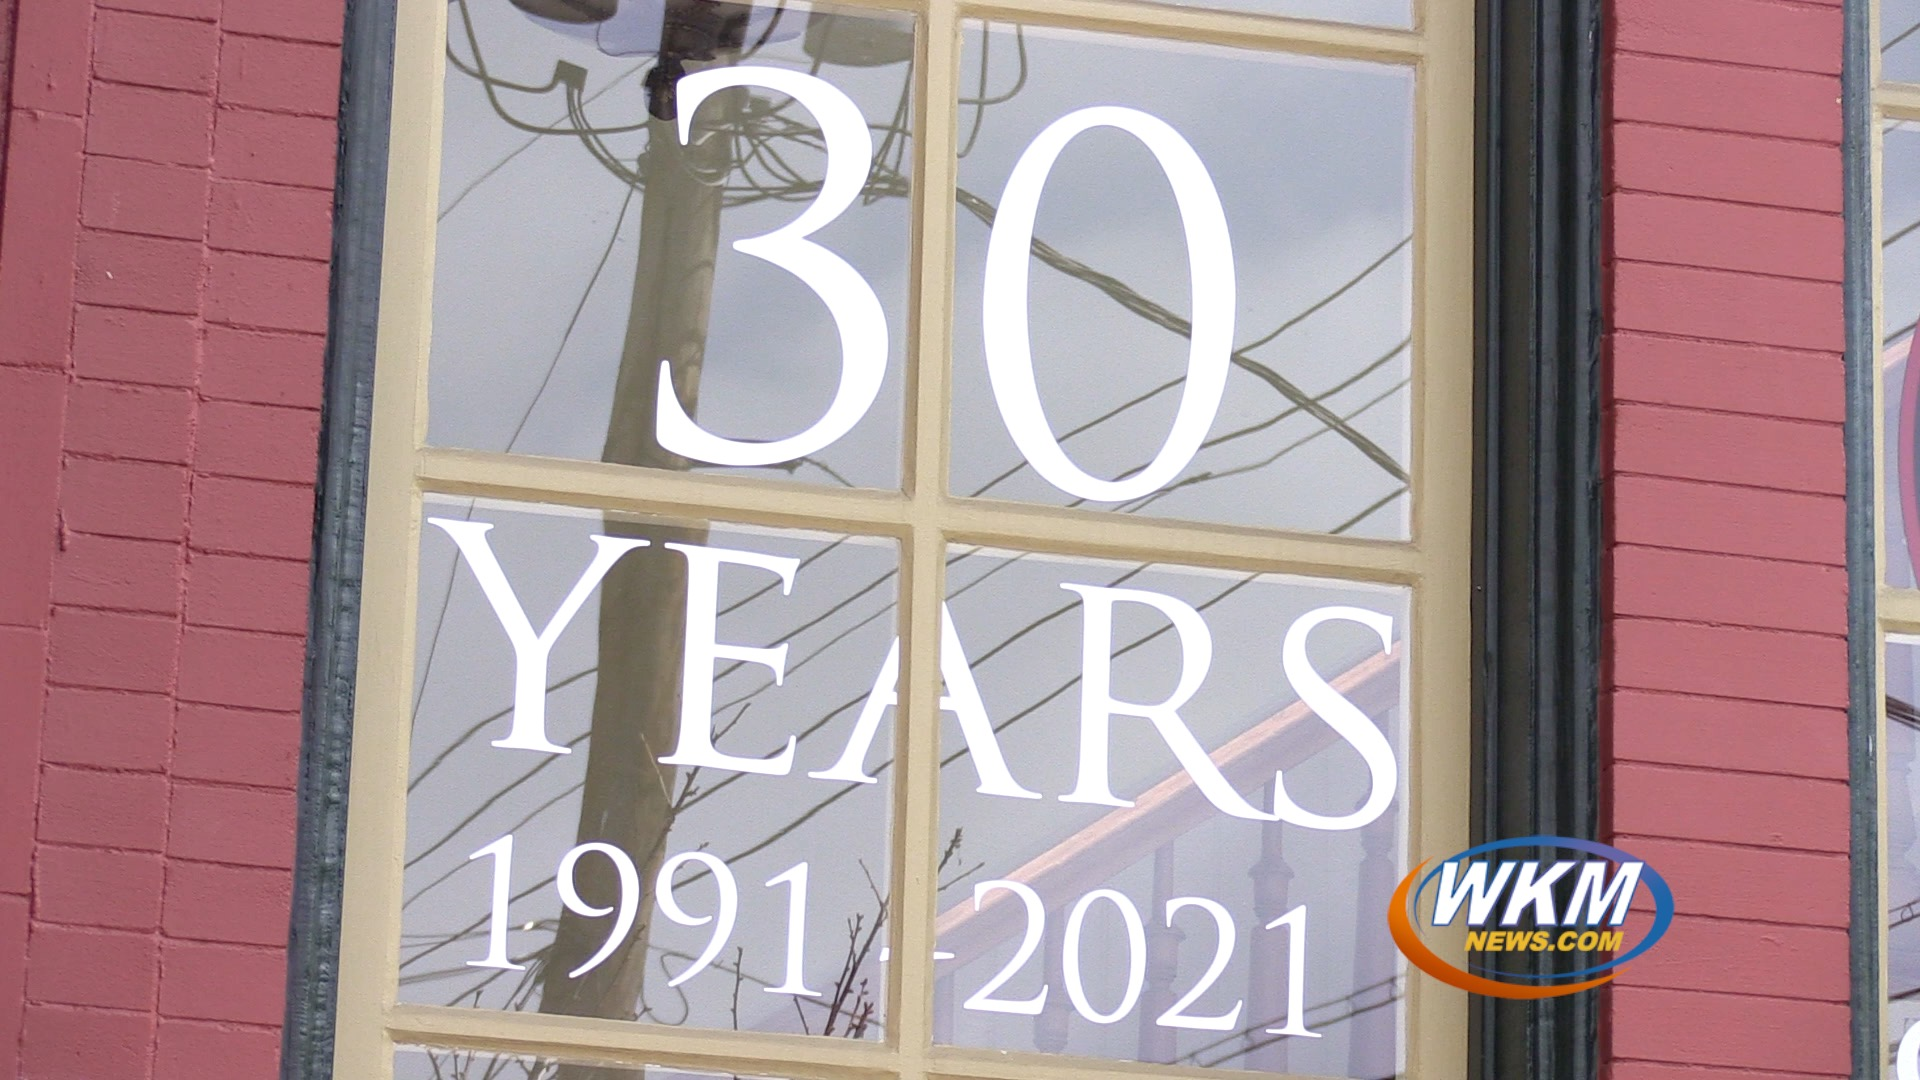 Community Foundation Celebrates 30th Birthday By Giving Others a Gift